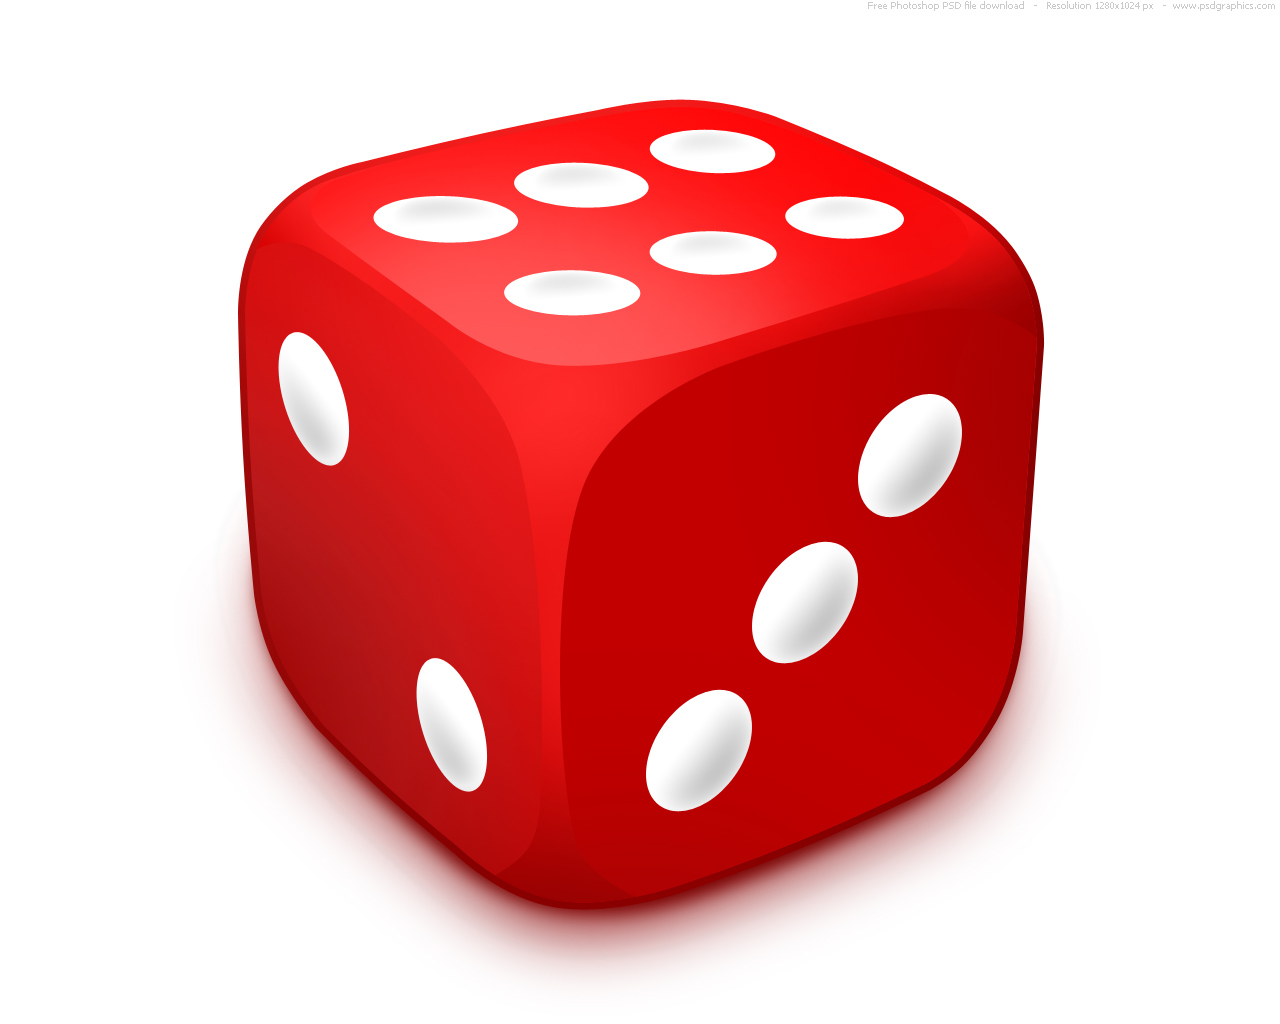 red-dice-icon.jpg